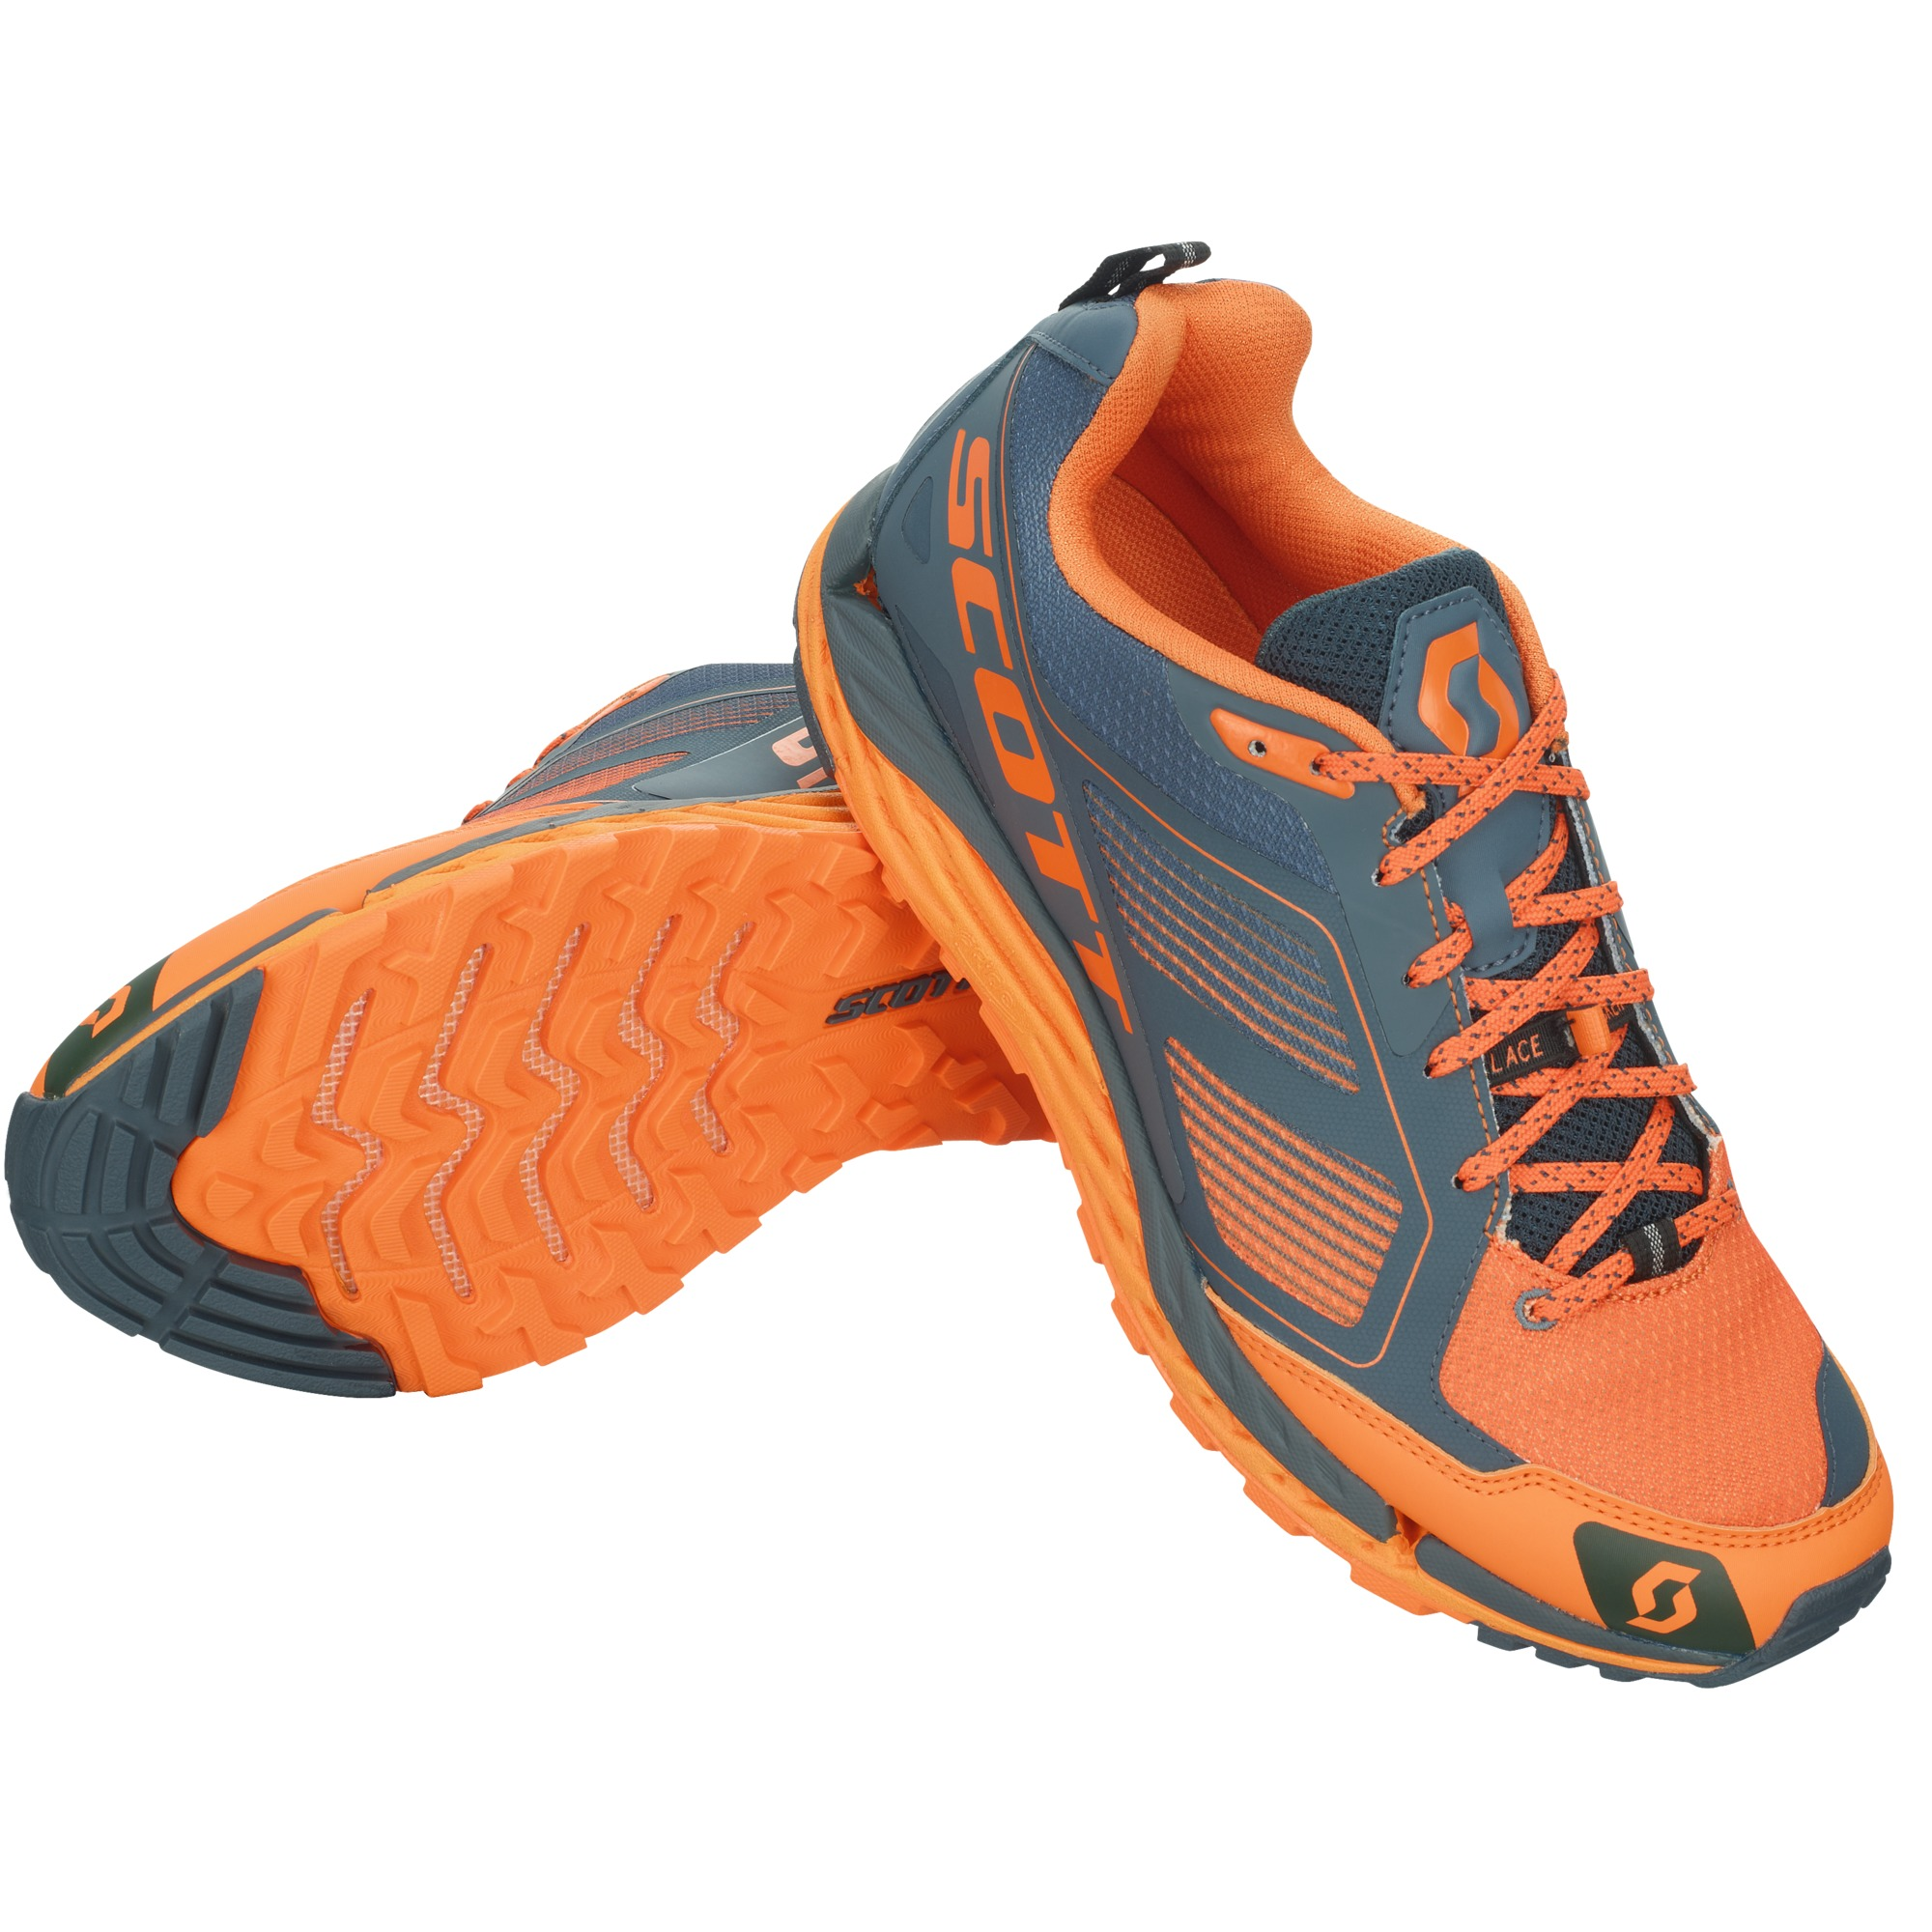 SCARPA TRAIL RUNNING SCOTT T2 KINABALU 3.0 MEN 251880 blue orange.jpg